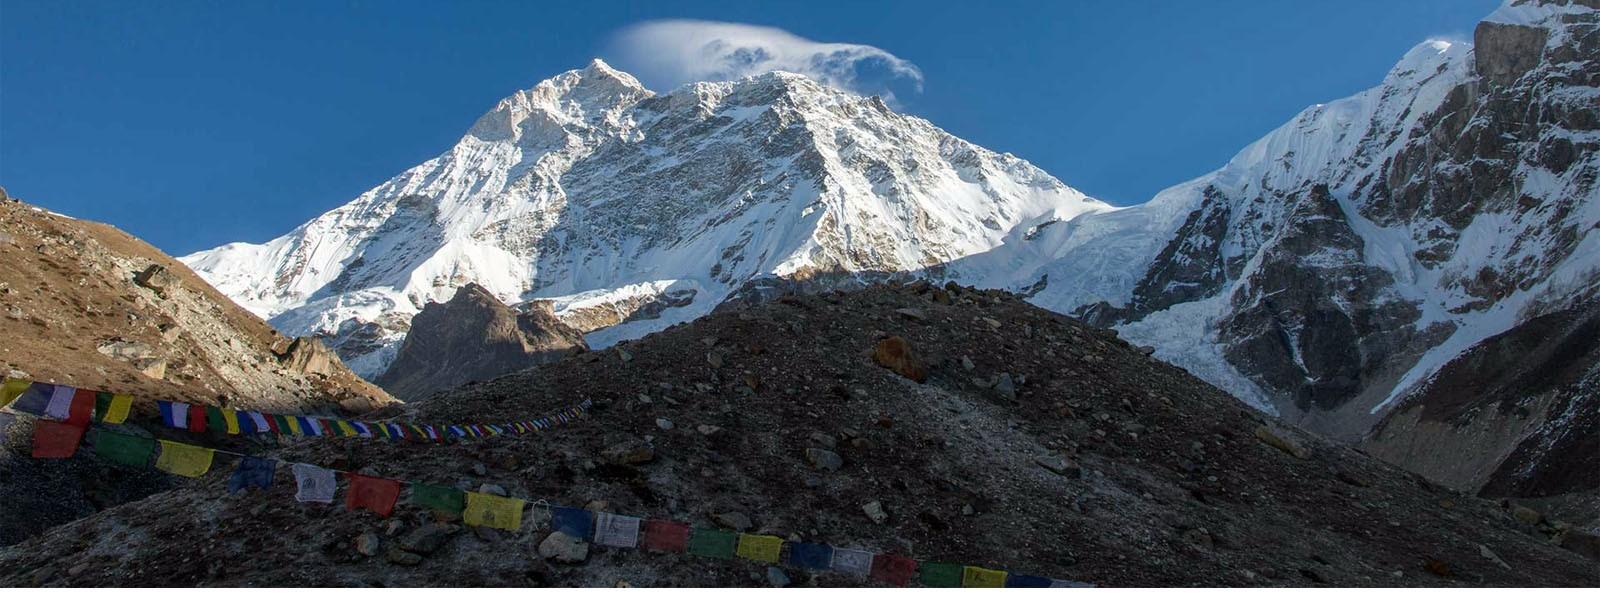 Mera Peak and Makalu Base Camp